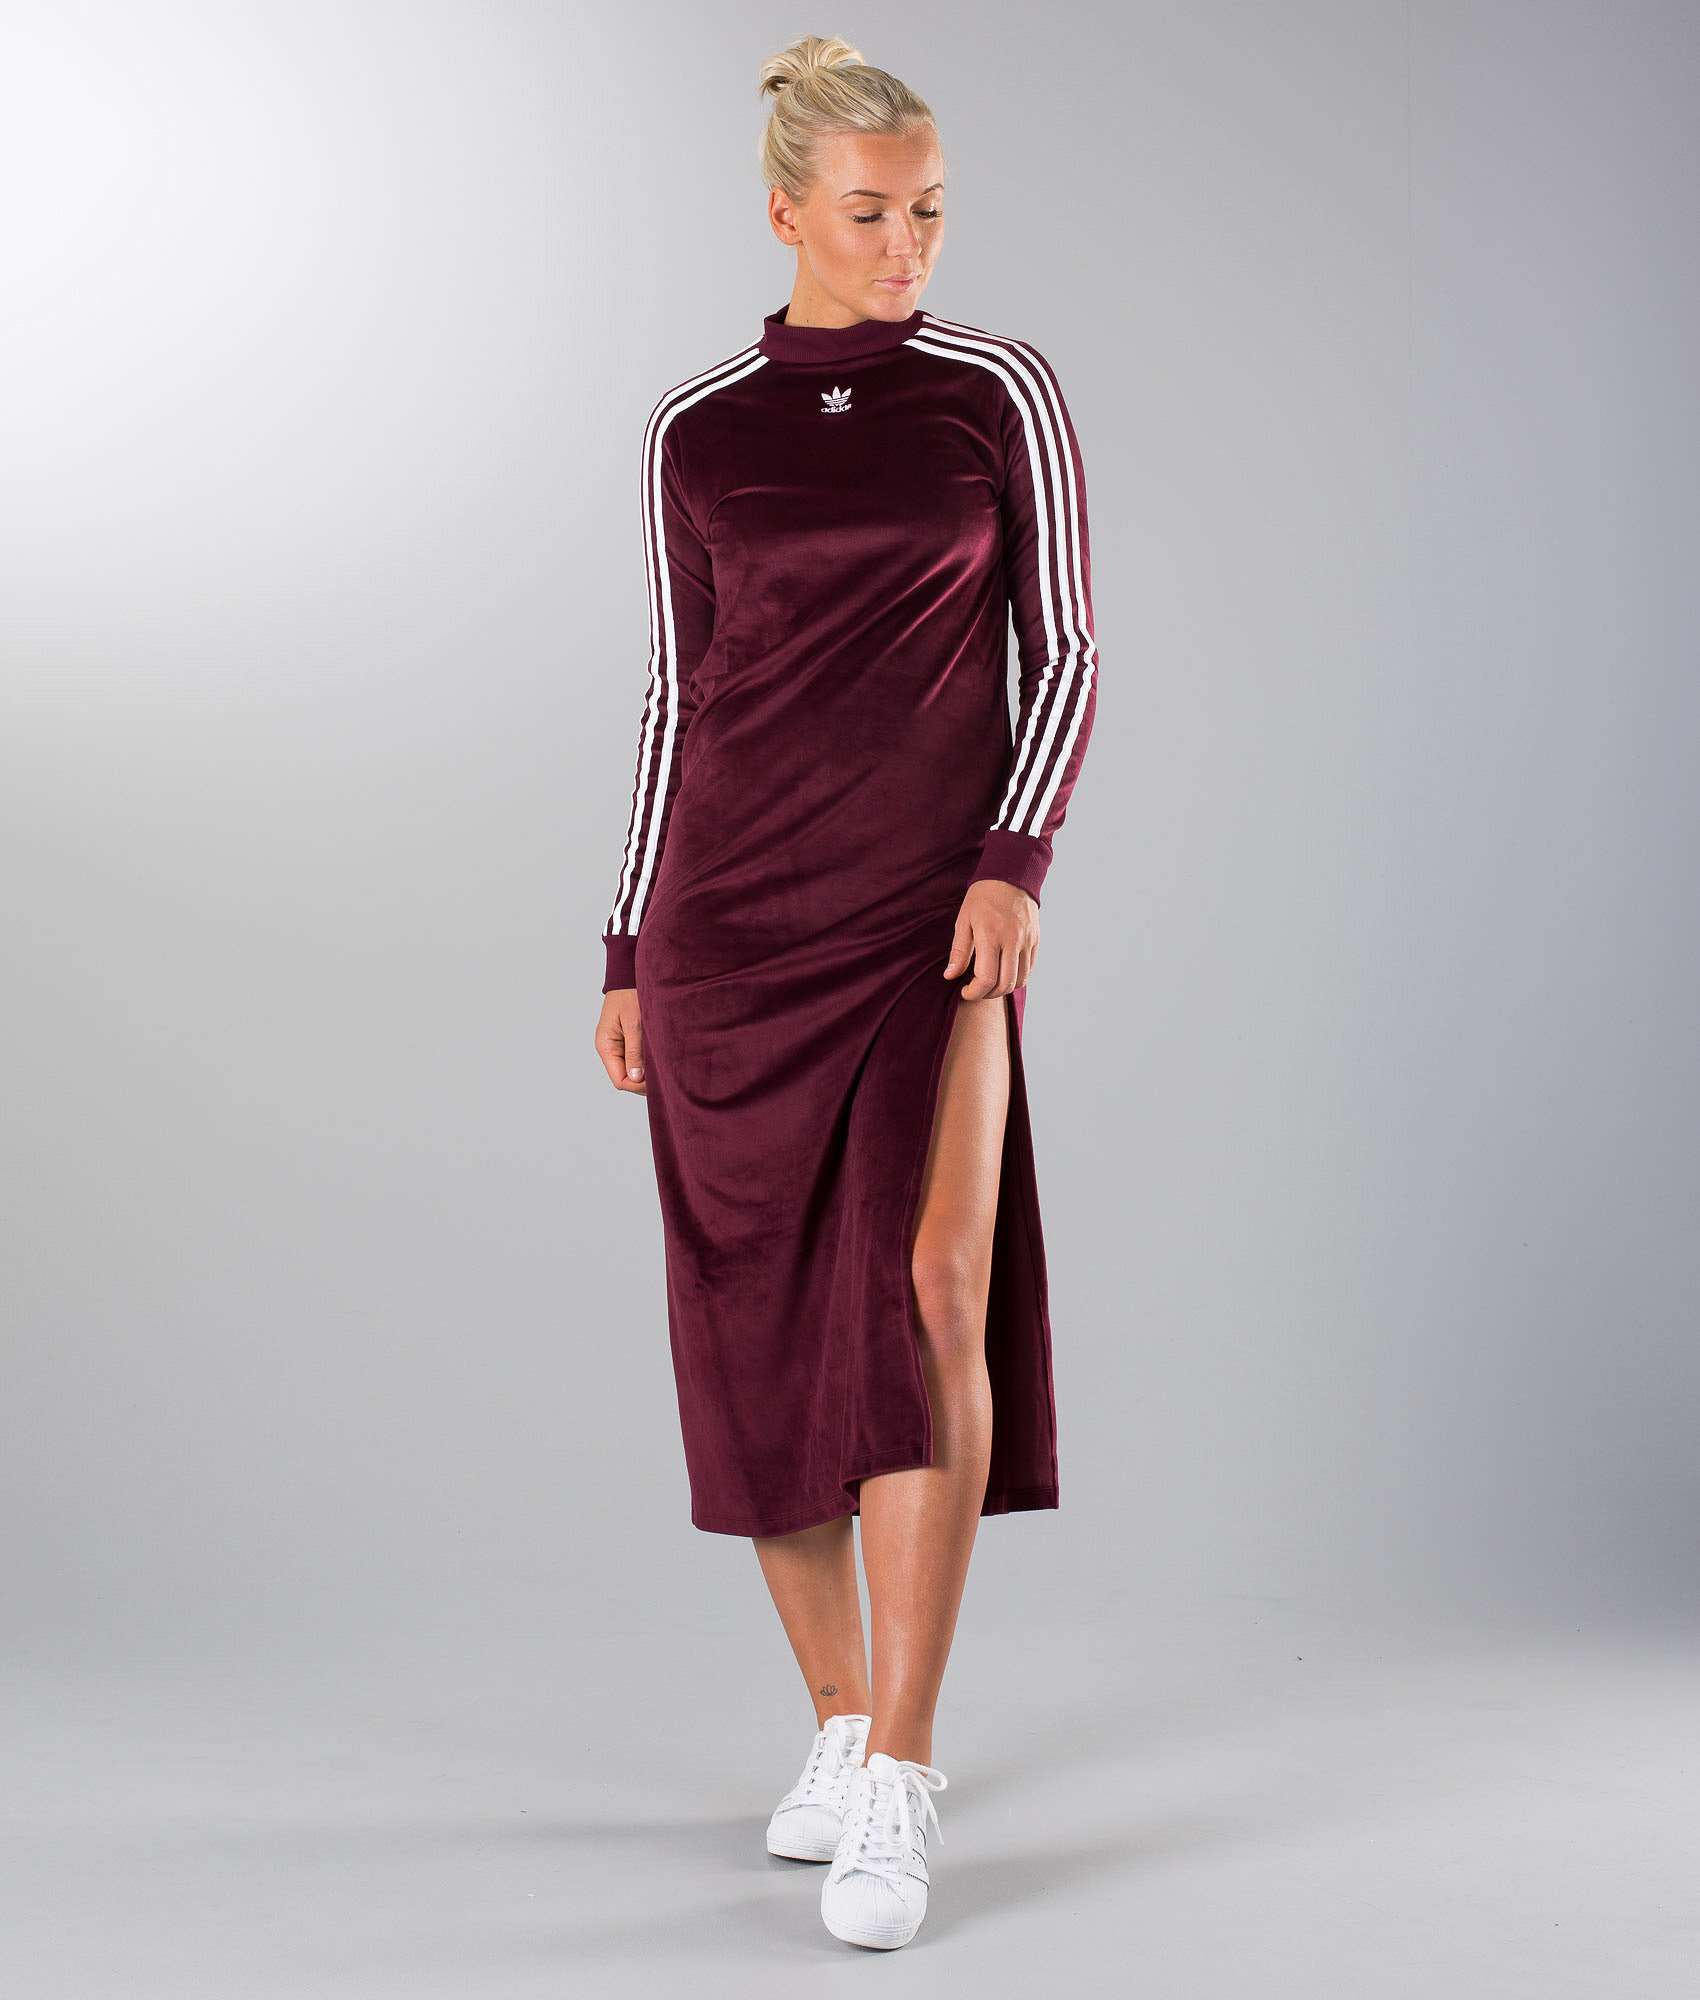 a7cf9c94 Adidas Originals Trefoil Dress Maroon - Ridestore.com